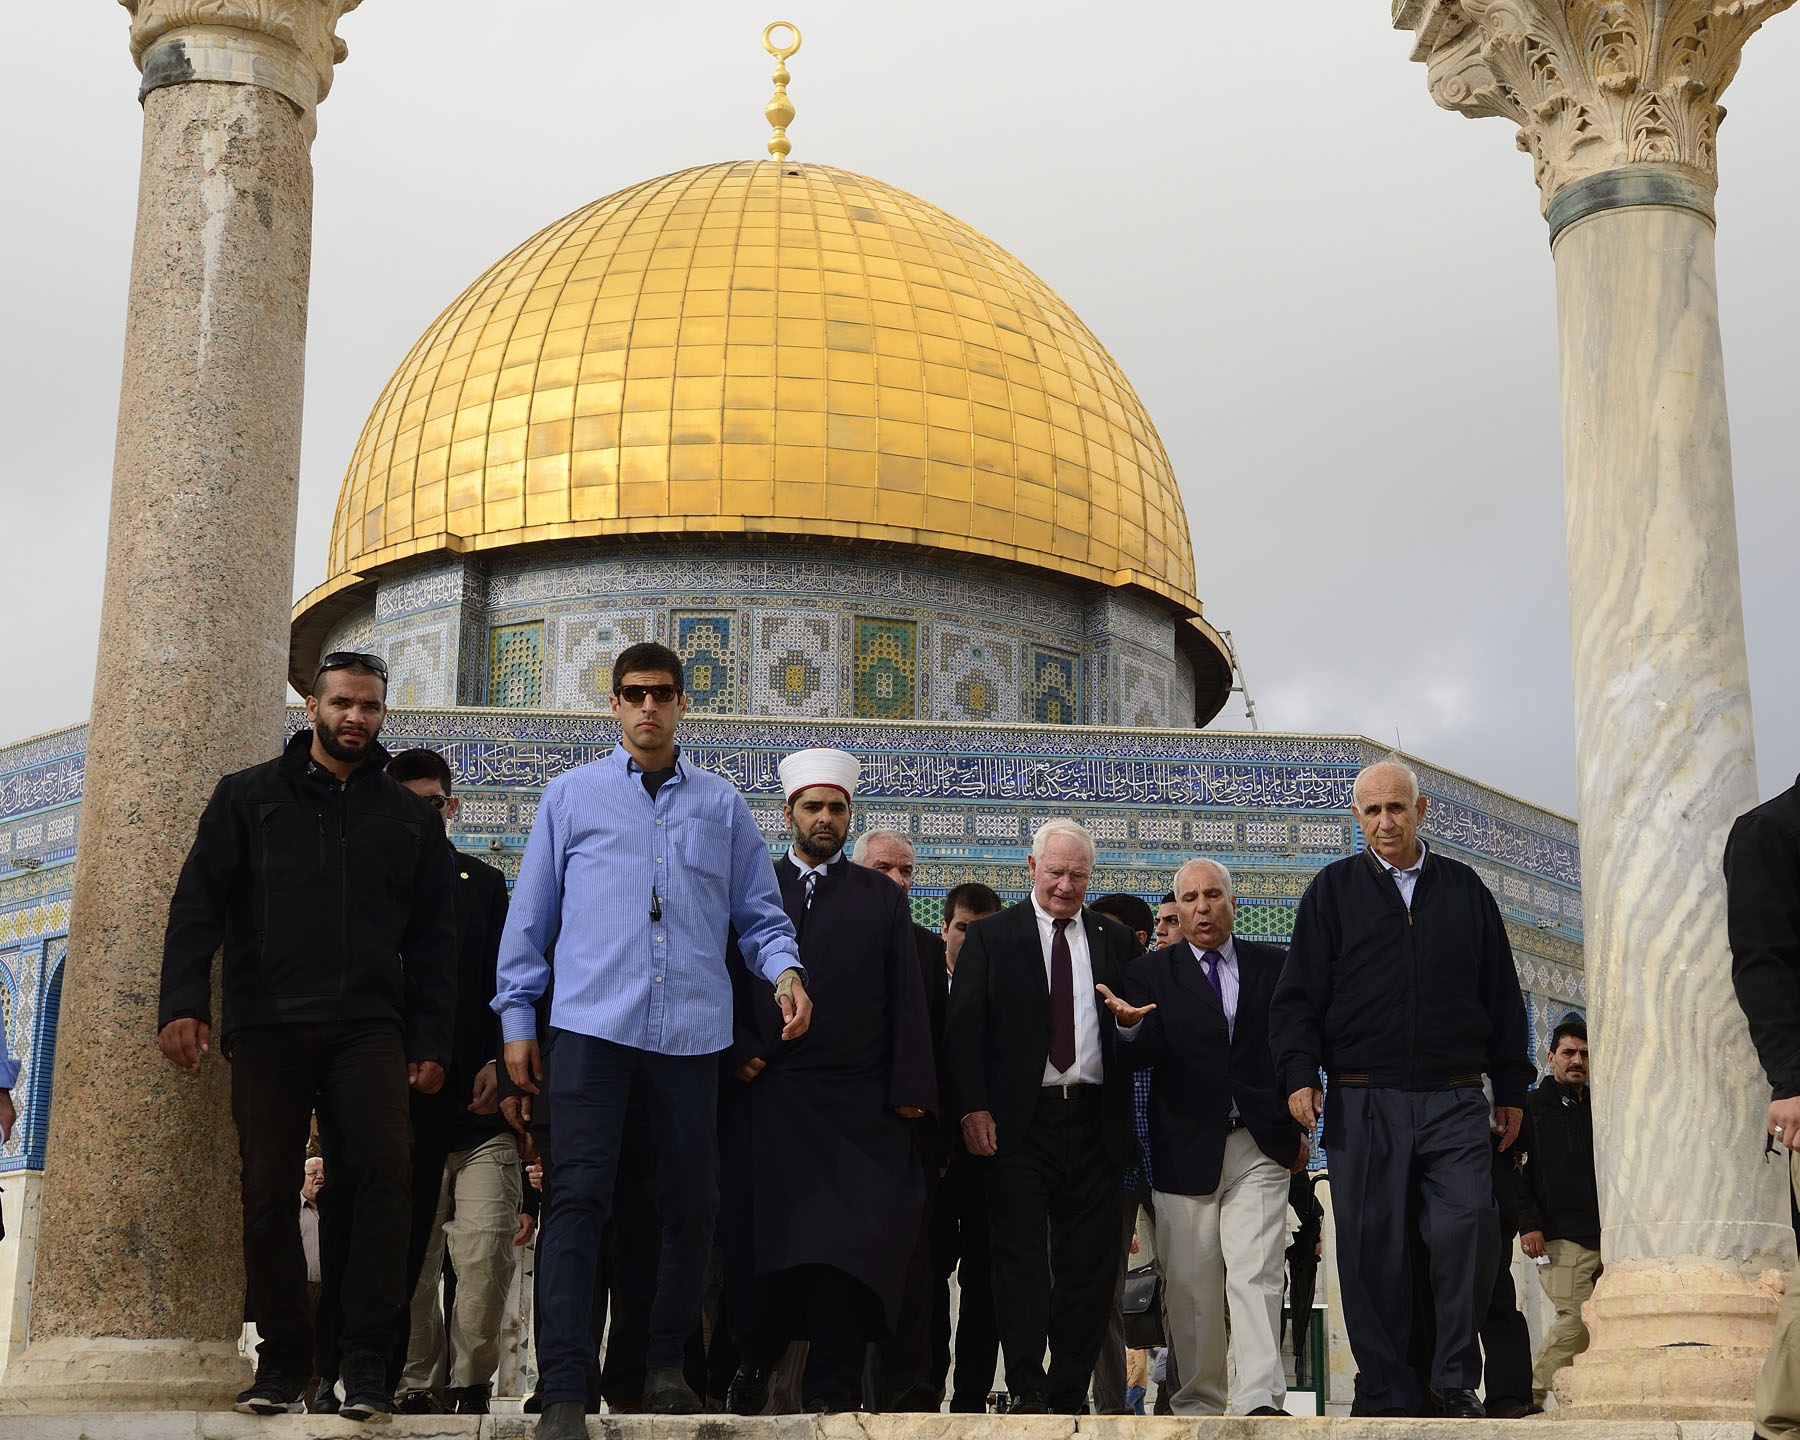 Upon their arrival in Jerusalem, Their Excellencies visited three holy sites in the Old City.